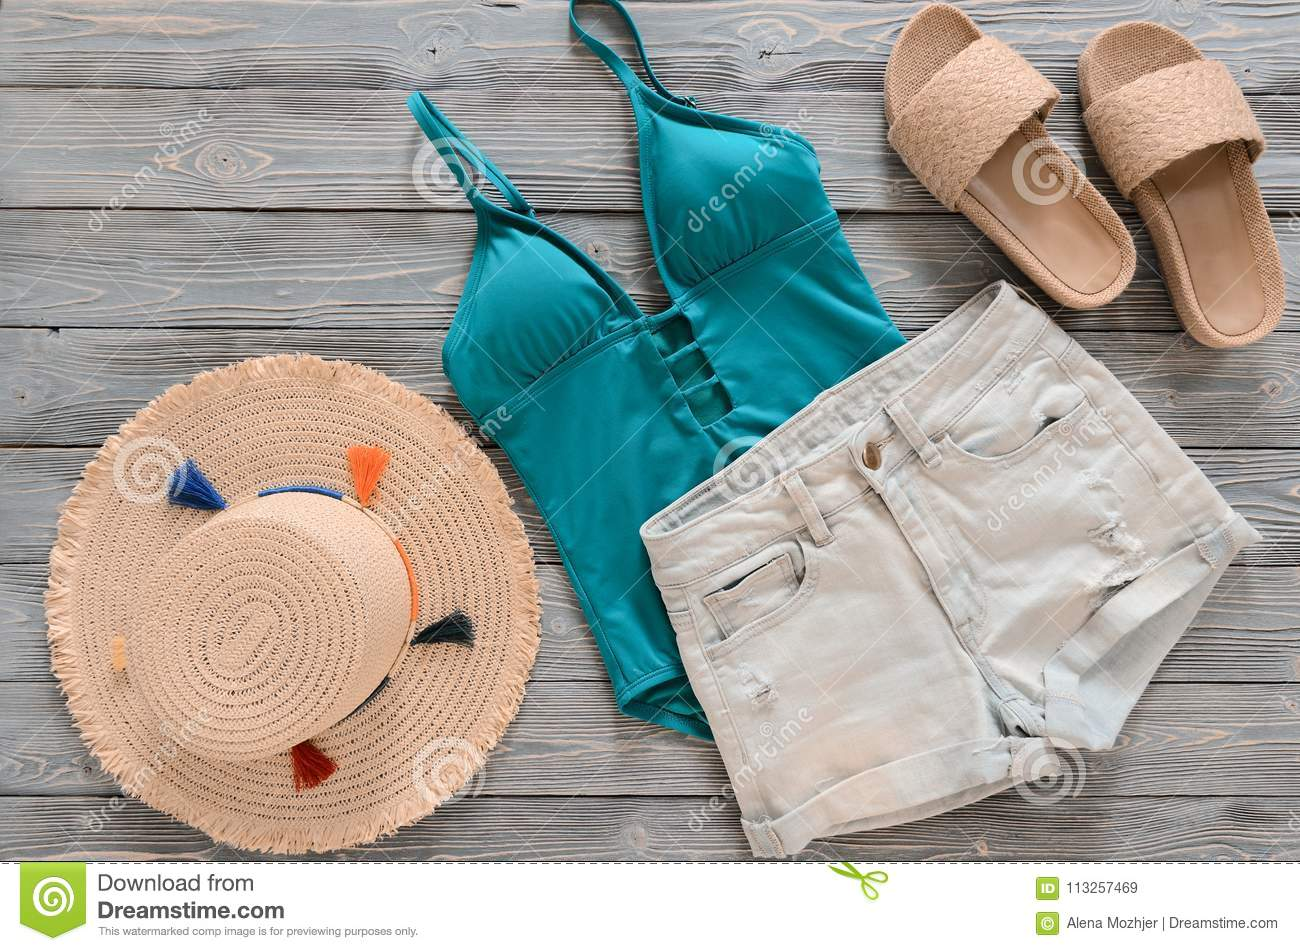 813be407ab Womens clothing, accessories denim shorts, straw hat, swimsuit, sandals on  grey wooden background. Trendy fashion outfit. Shopping, travel, summer,  beach ...